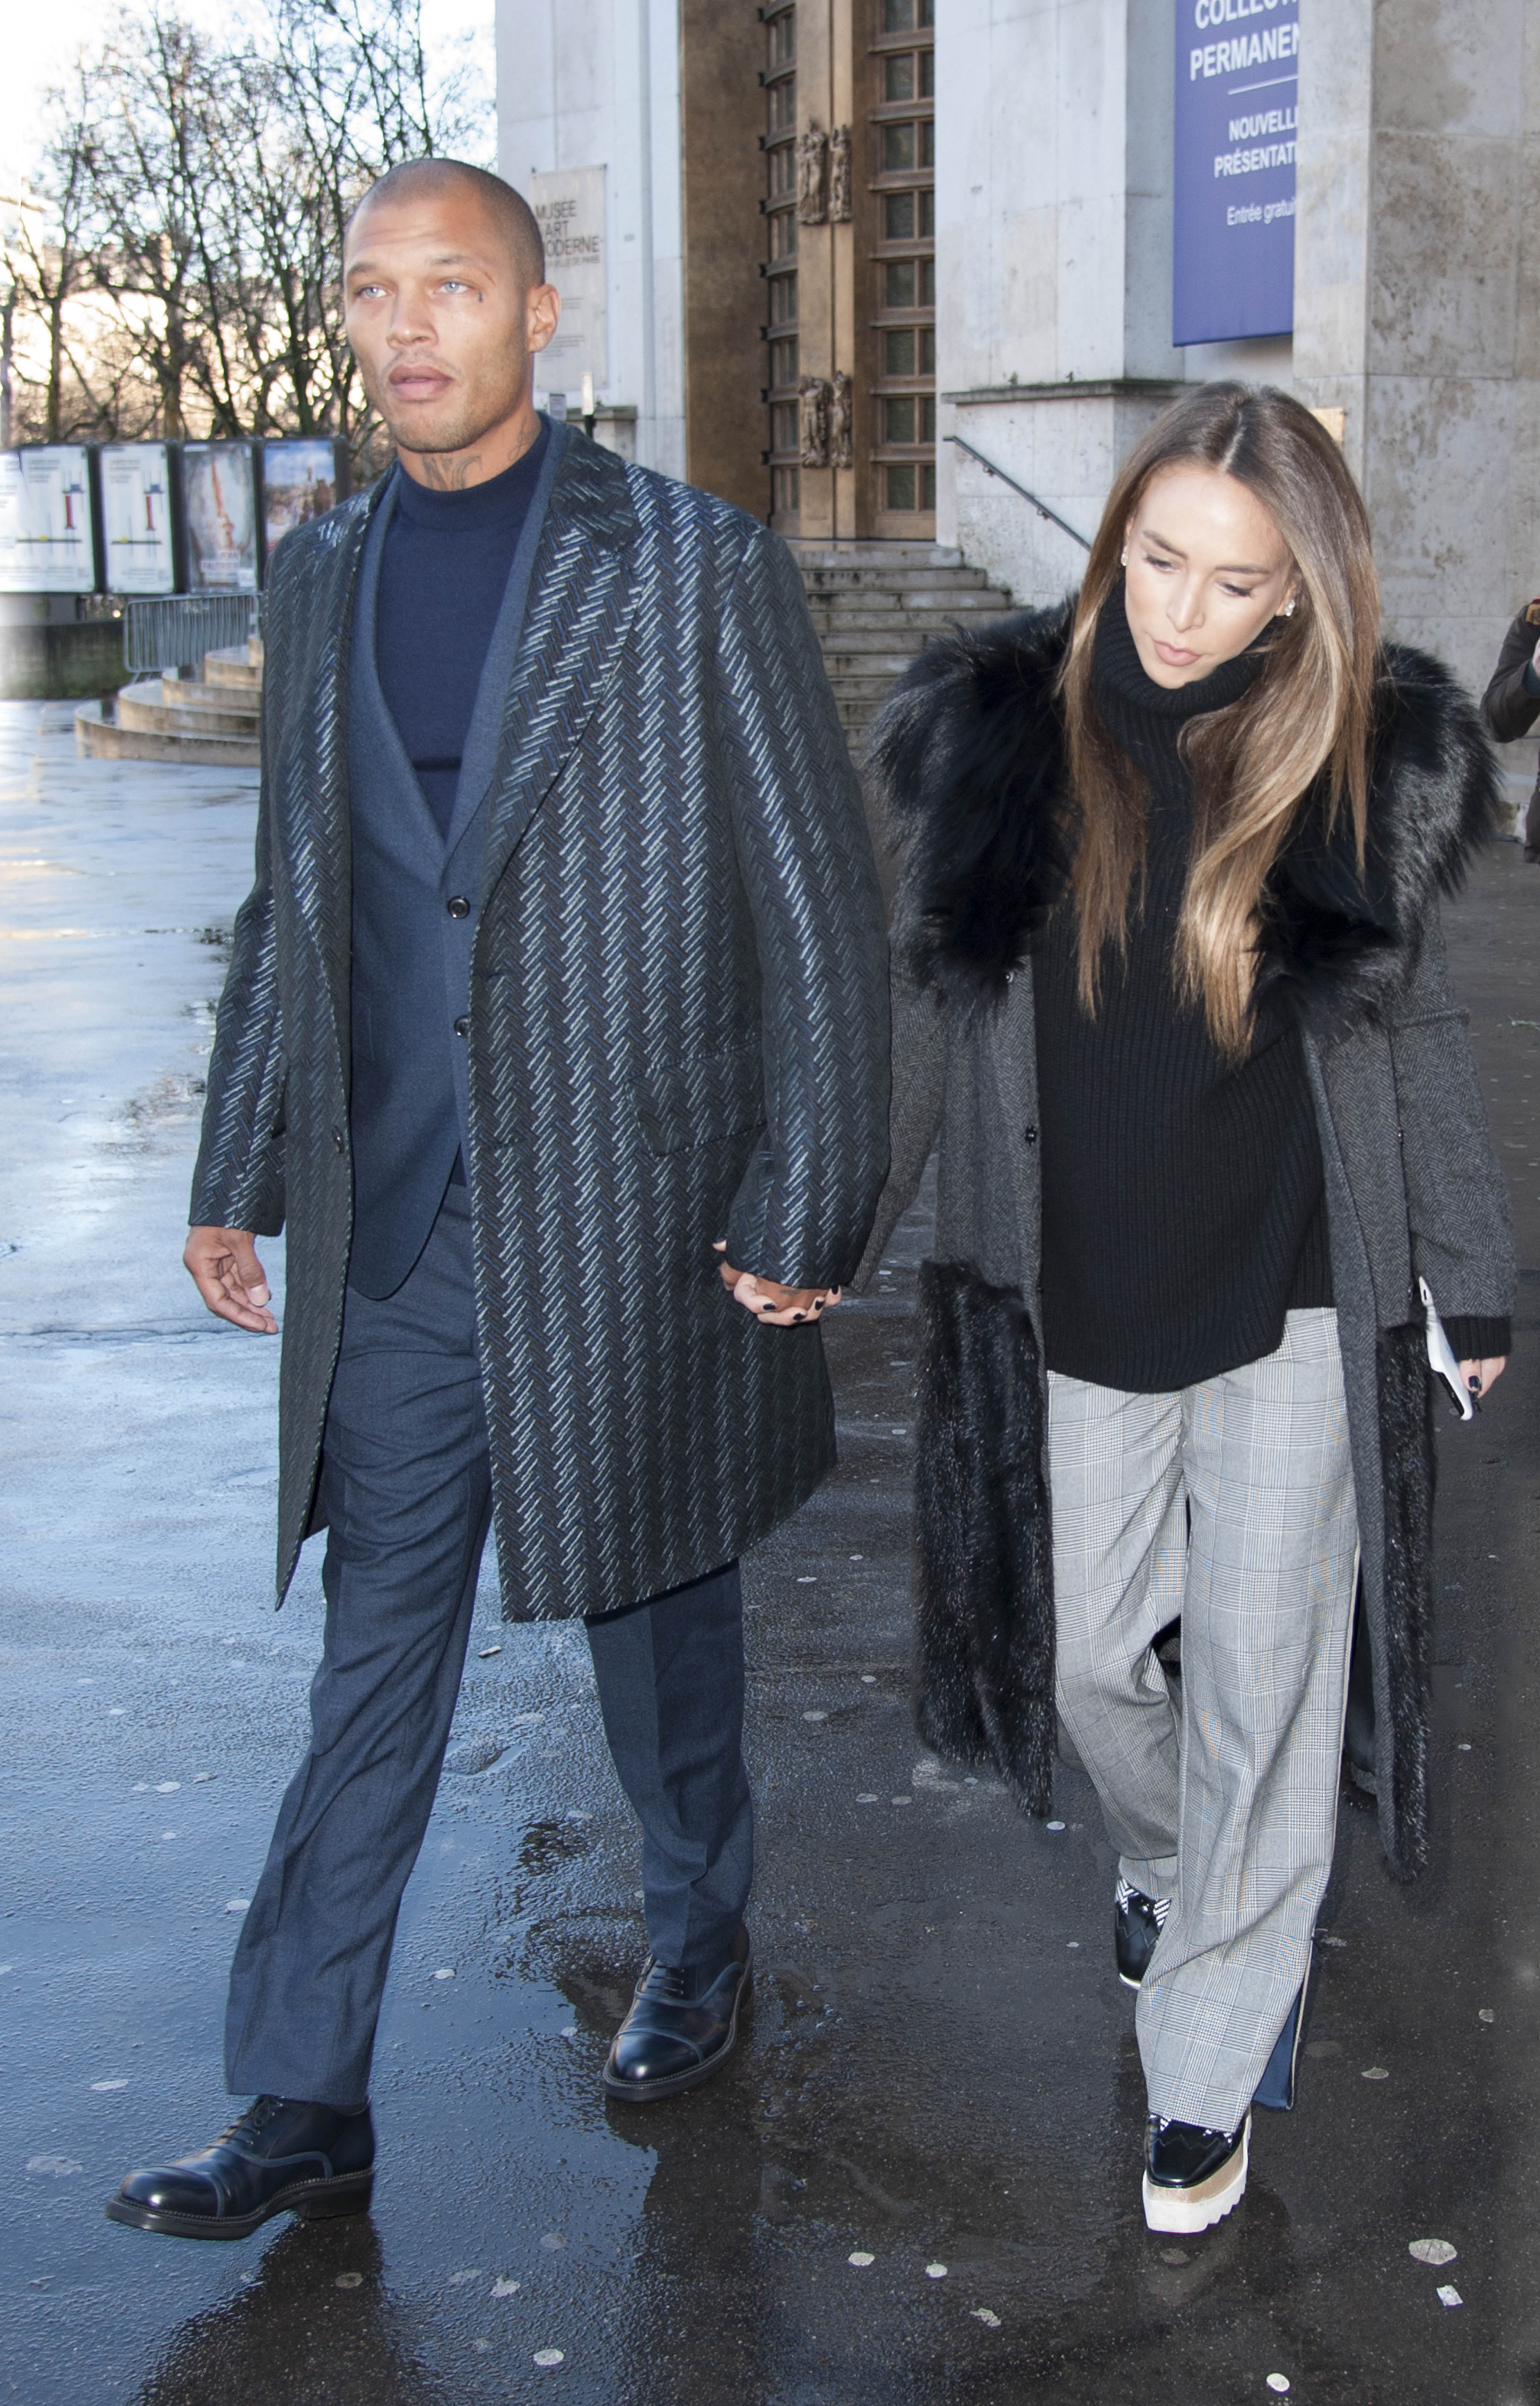 Jeremy Meeks and Chloe Green attend The Cerruti 1881 Show, Paris <P> Pictured: Jeremy Meeks and Chloe Green <B>Ref: SPL1648096  230118  </B><BR/> Picture by: Headlinephoto / Splash News<BR/> </P><P> <B>Splash News and Pictures</B><BR/> Los Angeles:	310-821-2666<BR/> New York:	212-619-2666<BR/> London:	870-934-2666<BR/> <span id=